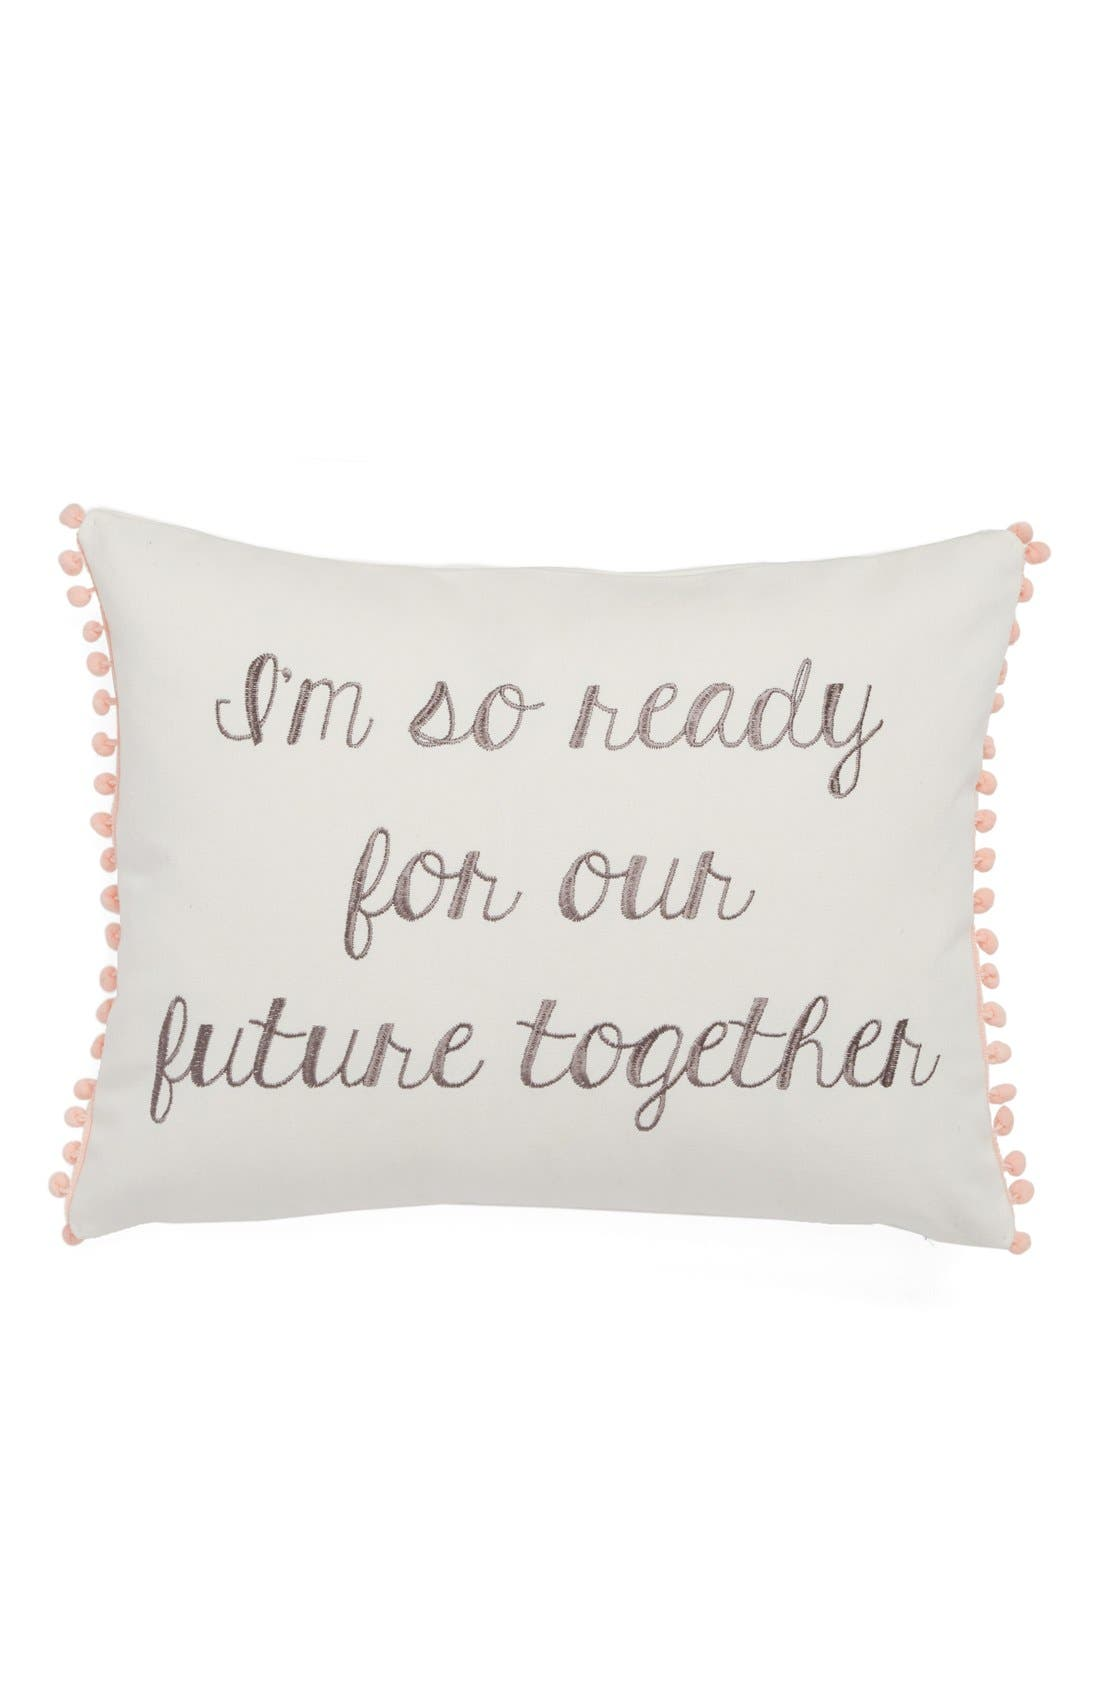 Alternate Image 1 Selected - Levtex 'Ready for Our Future' Pillow